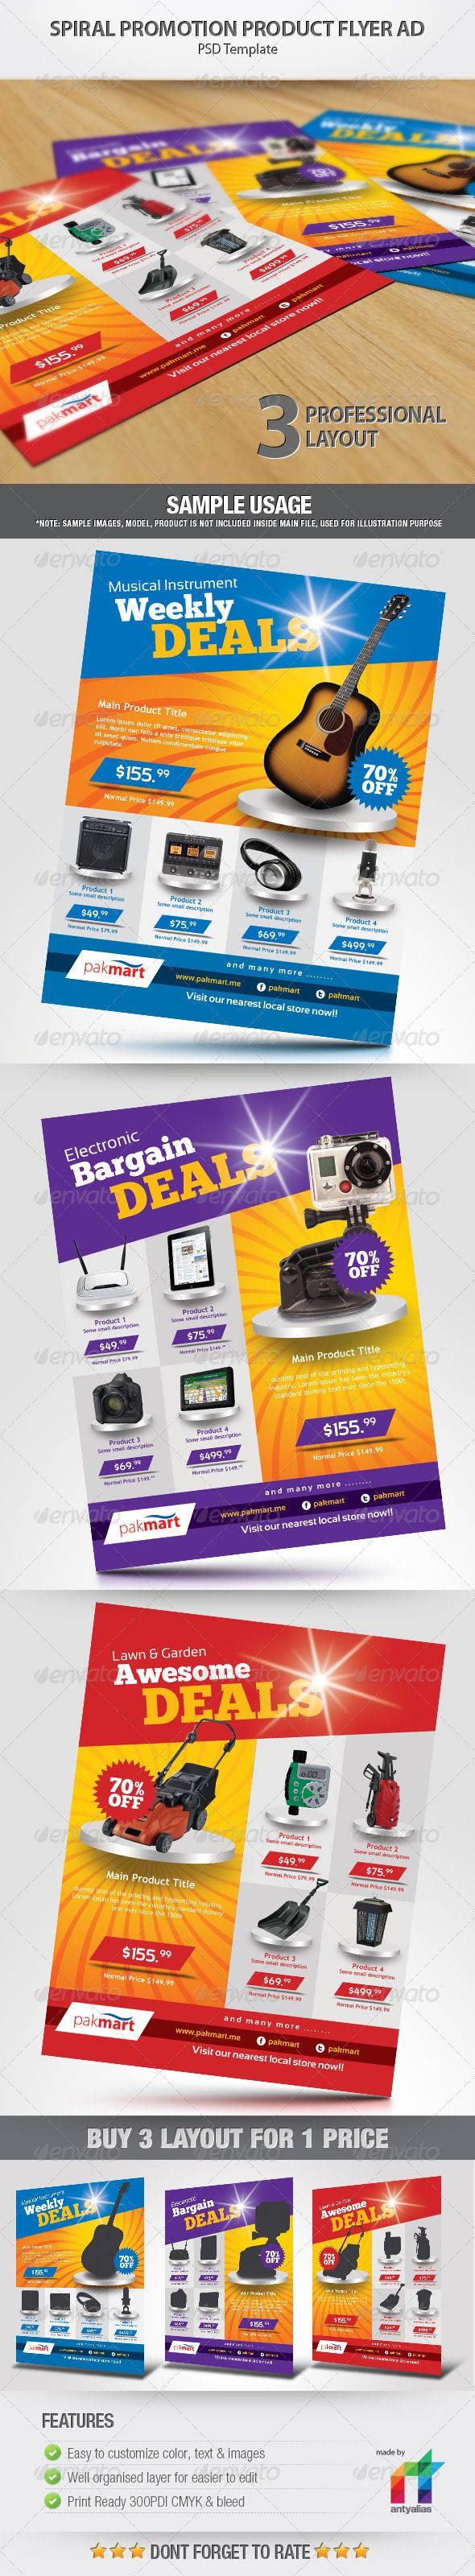 PSD Spiral Promotion Product Flyer Ad  Template • Only available here ➝ http://graphicriver.net/item/spiral-promotion-product-flyer-ad/2536578?ref=pxcr